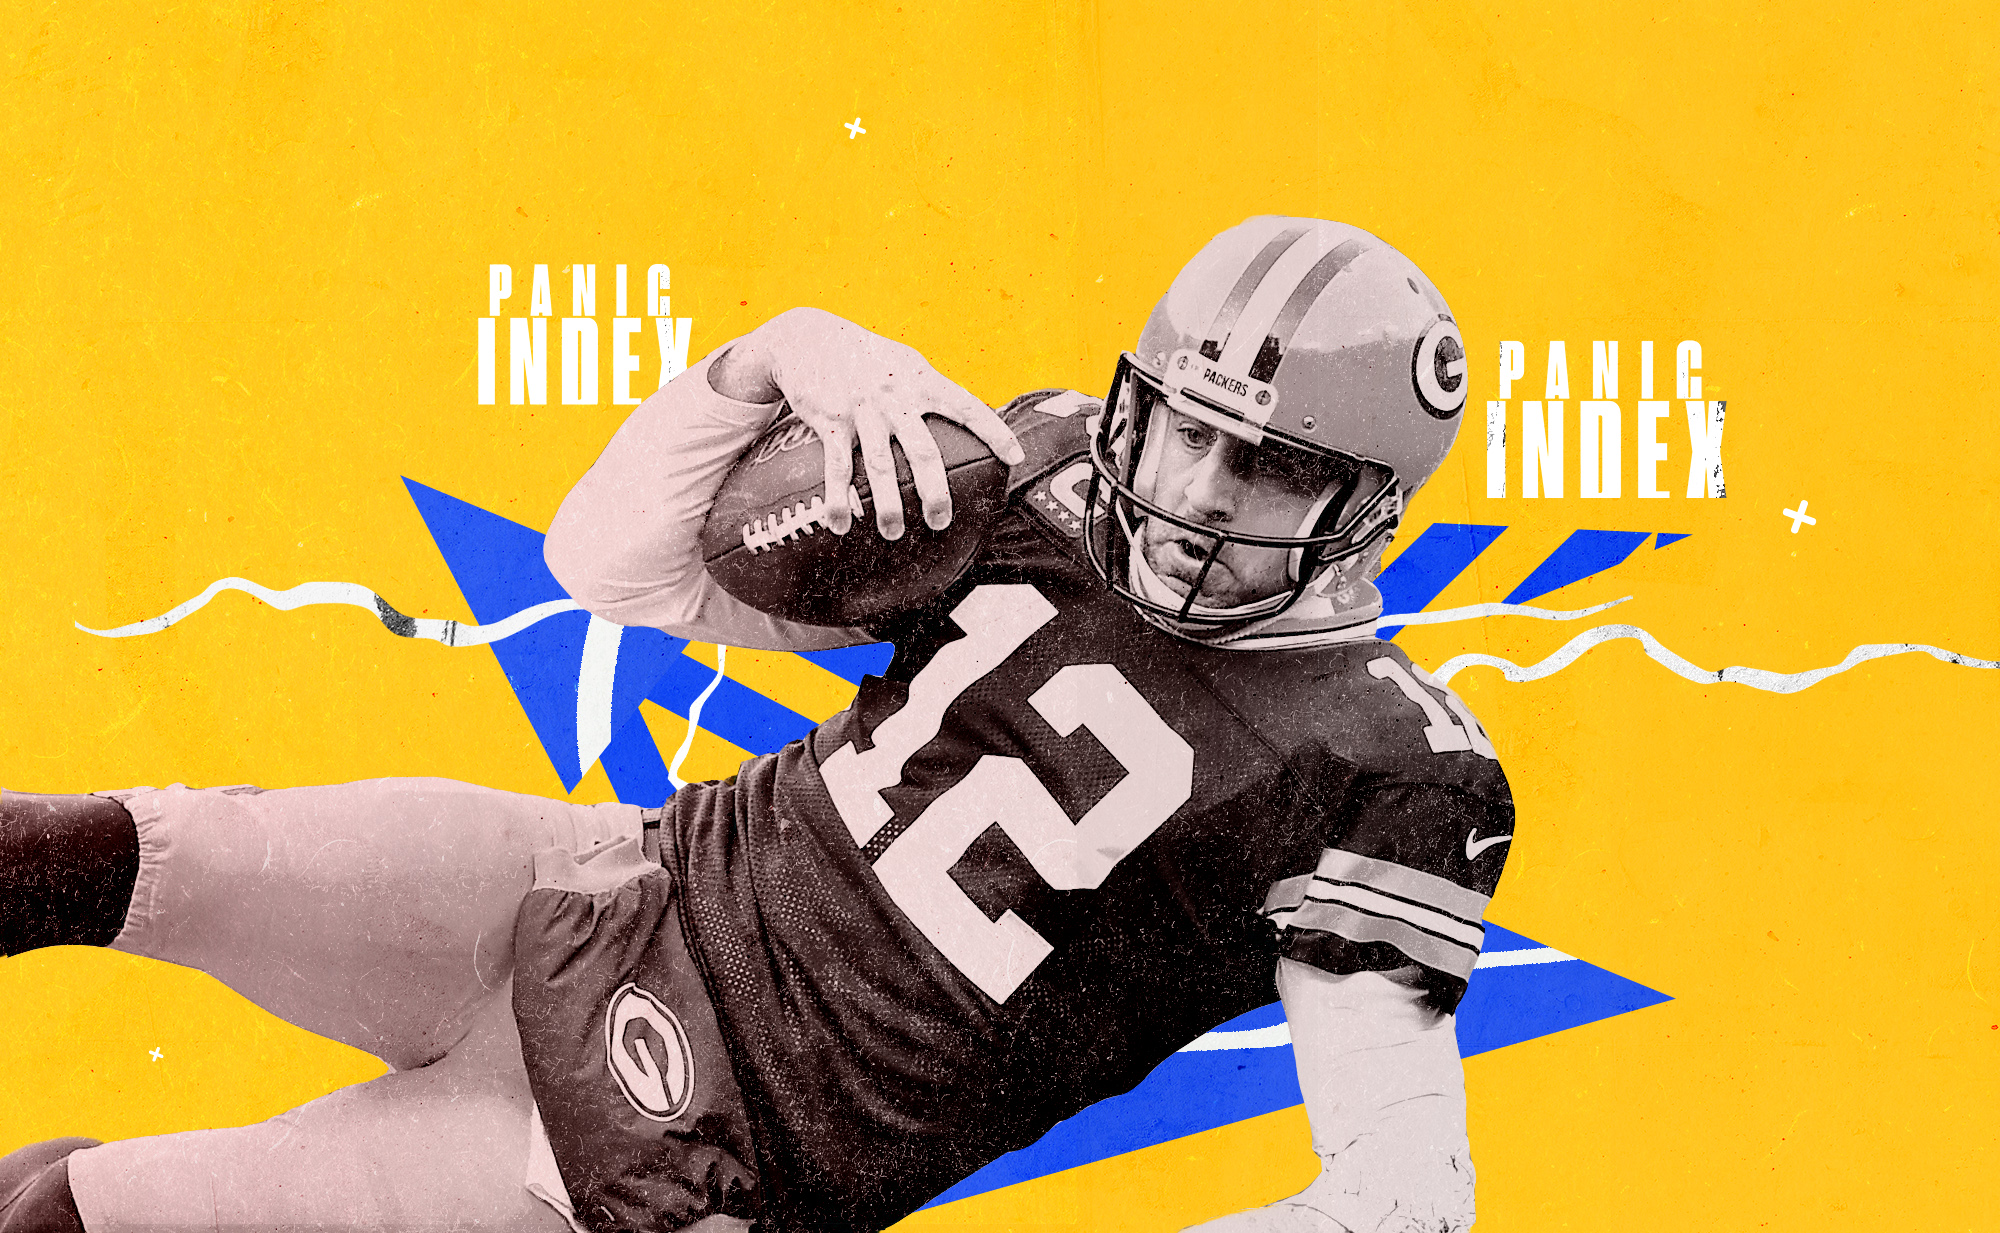 Packers QB Aaron Rodgers slides with the ball in his right hand, superimposed on a blue and yellow background with the words PANIC INDEX in white